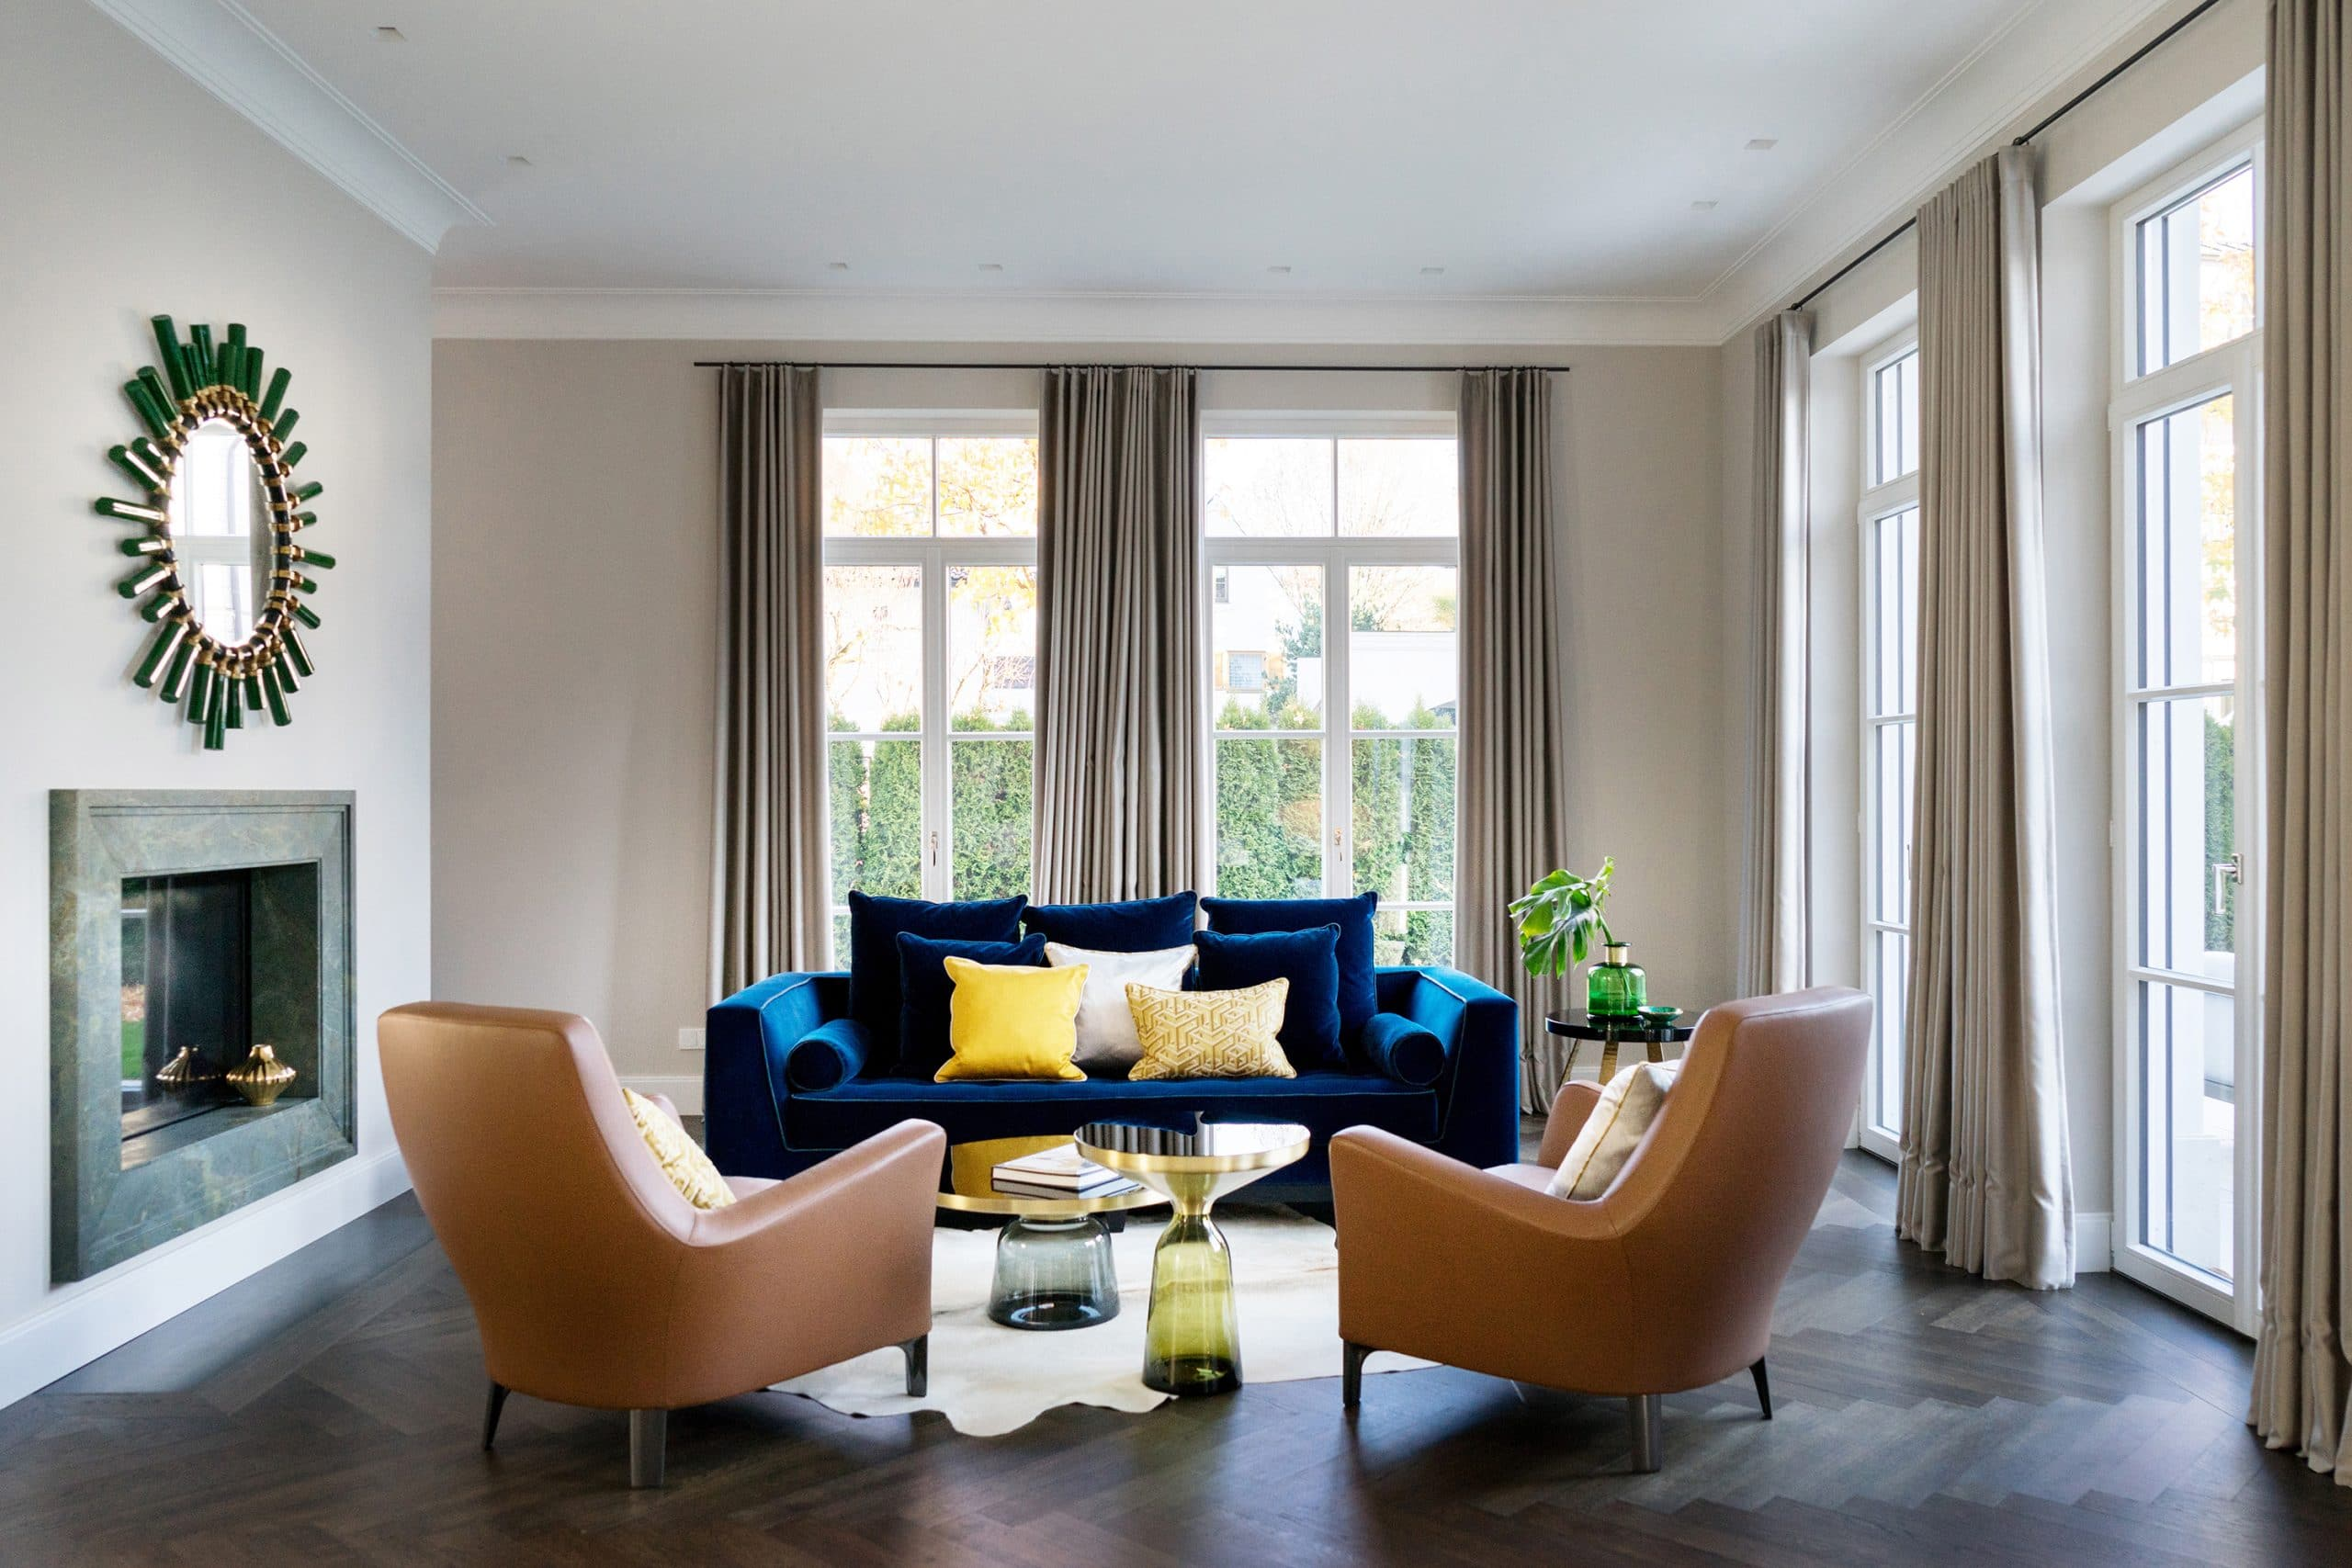 Landau +Kinderbacher From Germany with the best interior design 1